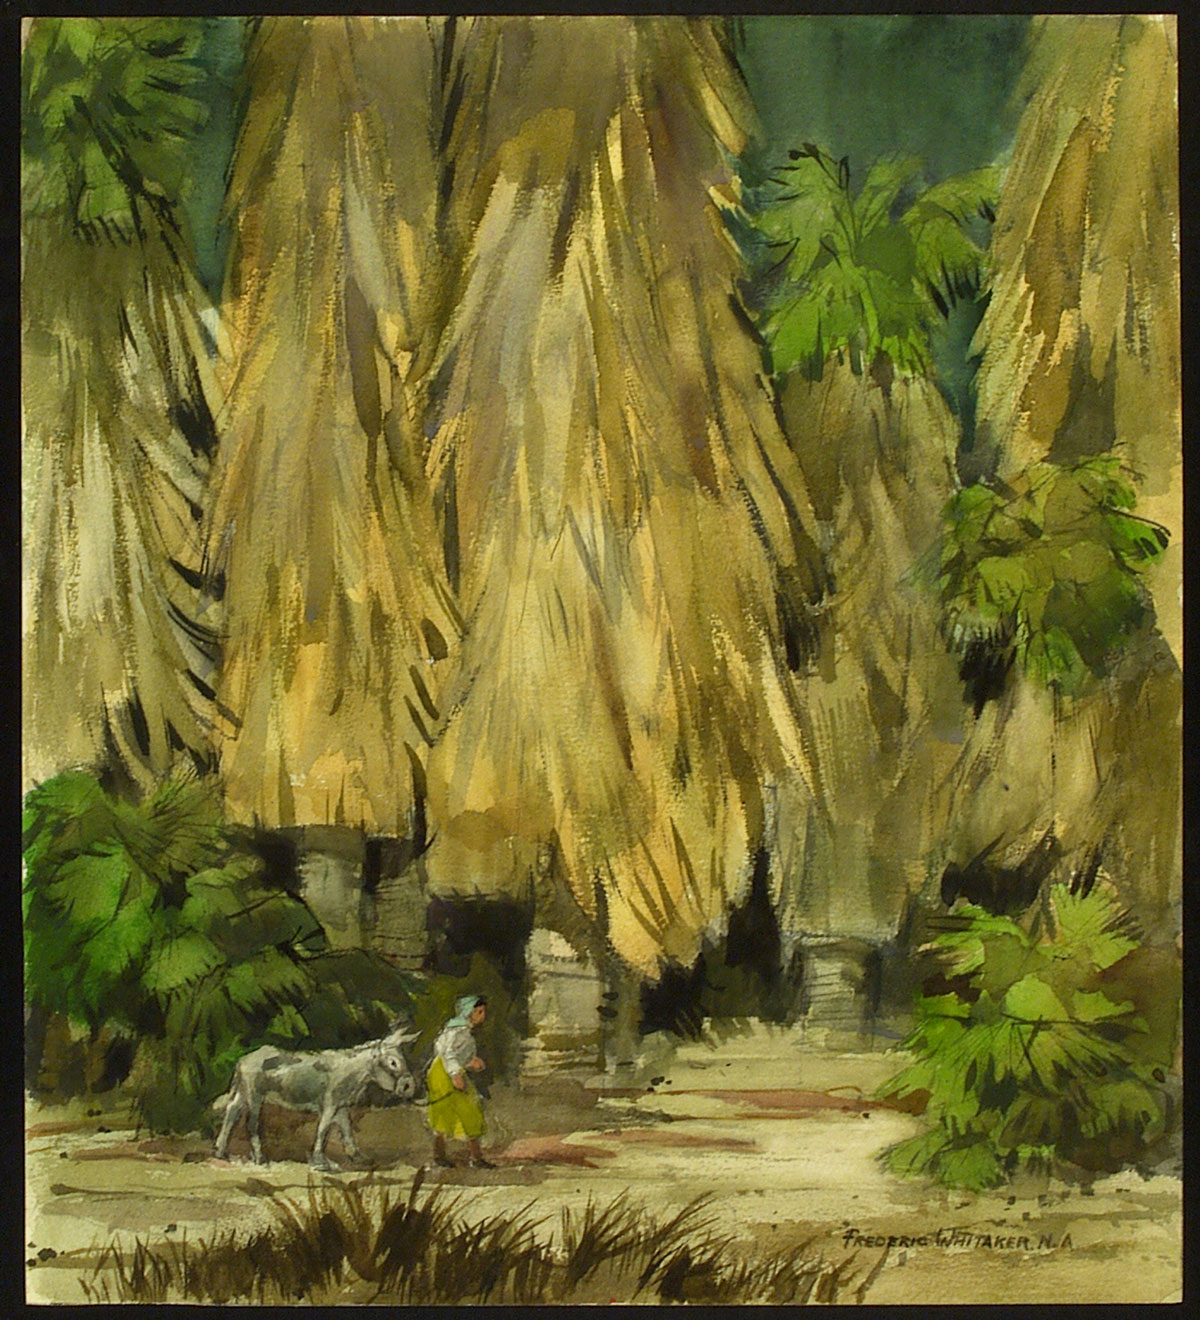 """Giant Palms"" 1970 © Frederic Whitaker N.A. 22x24.5 inches Watercolor"